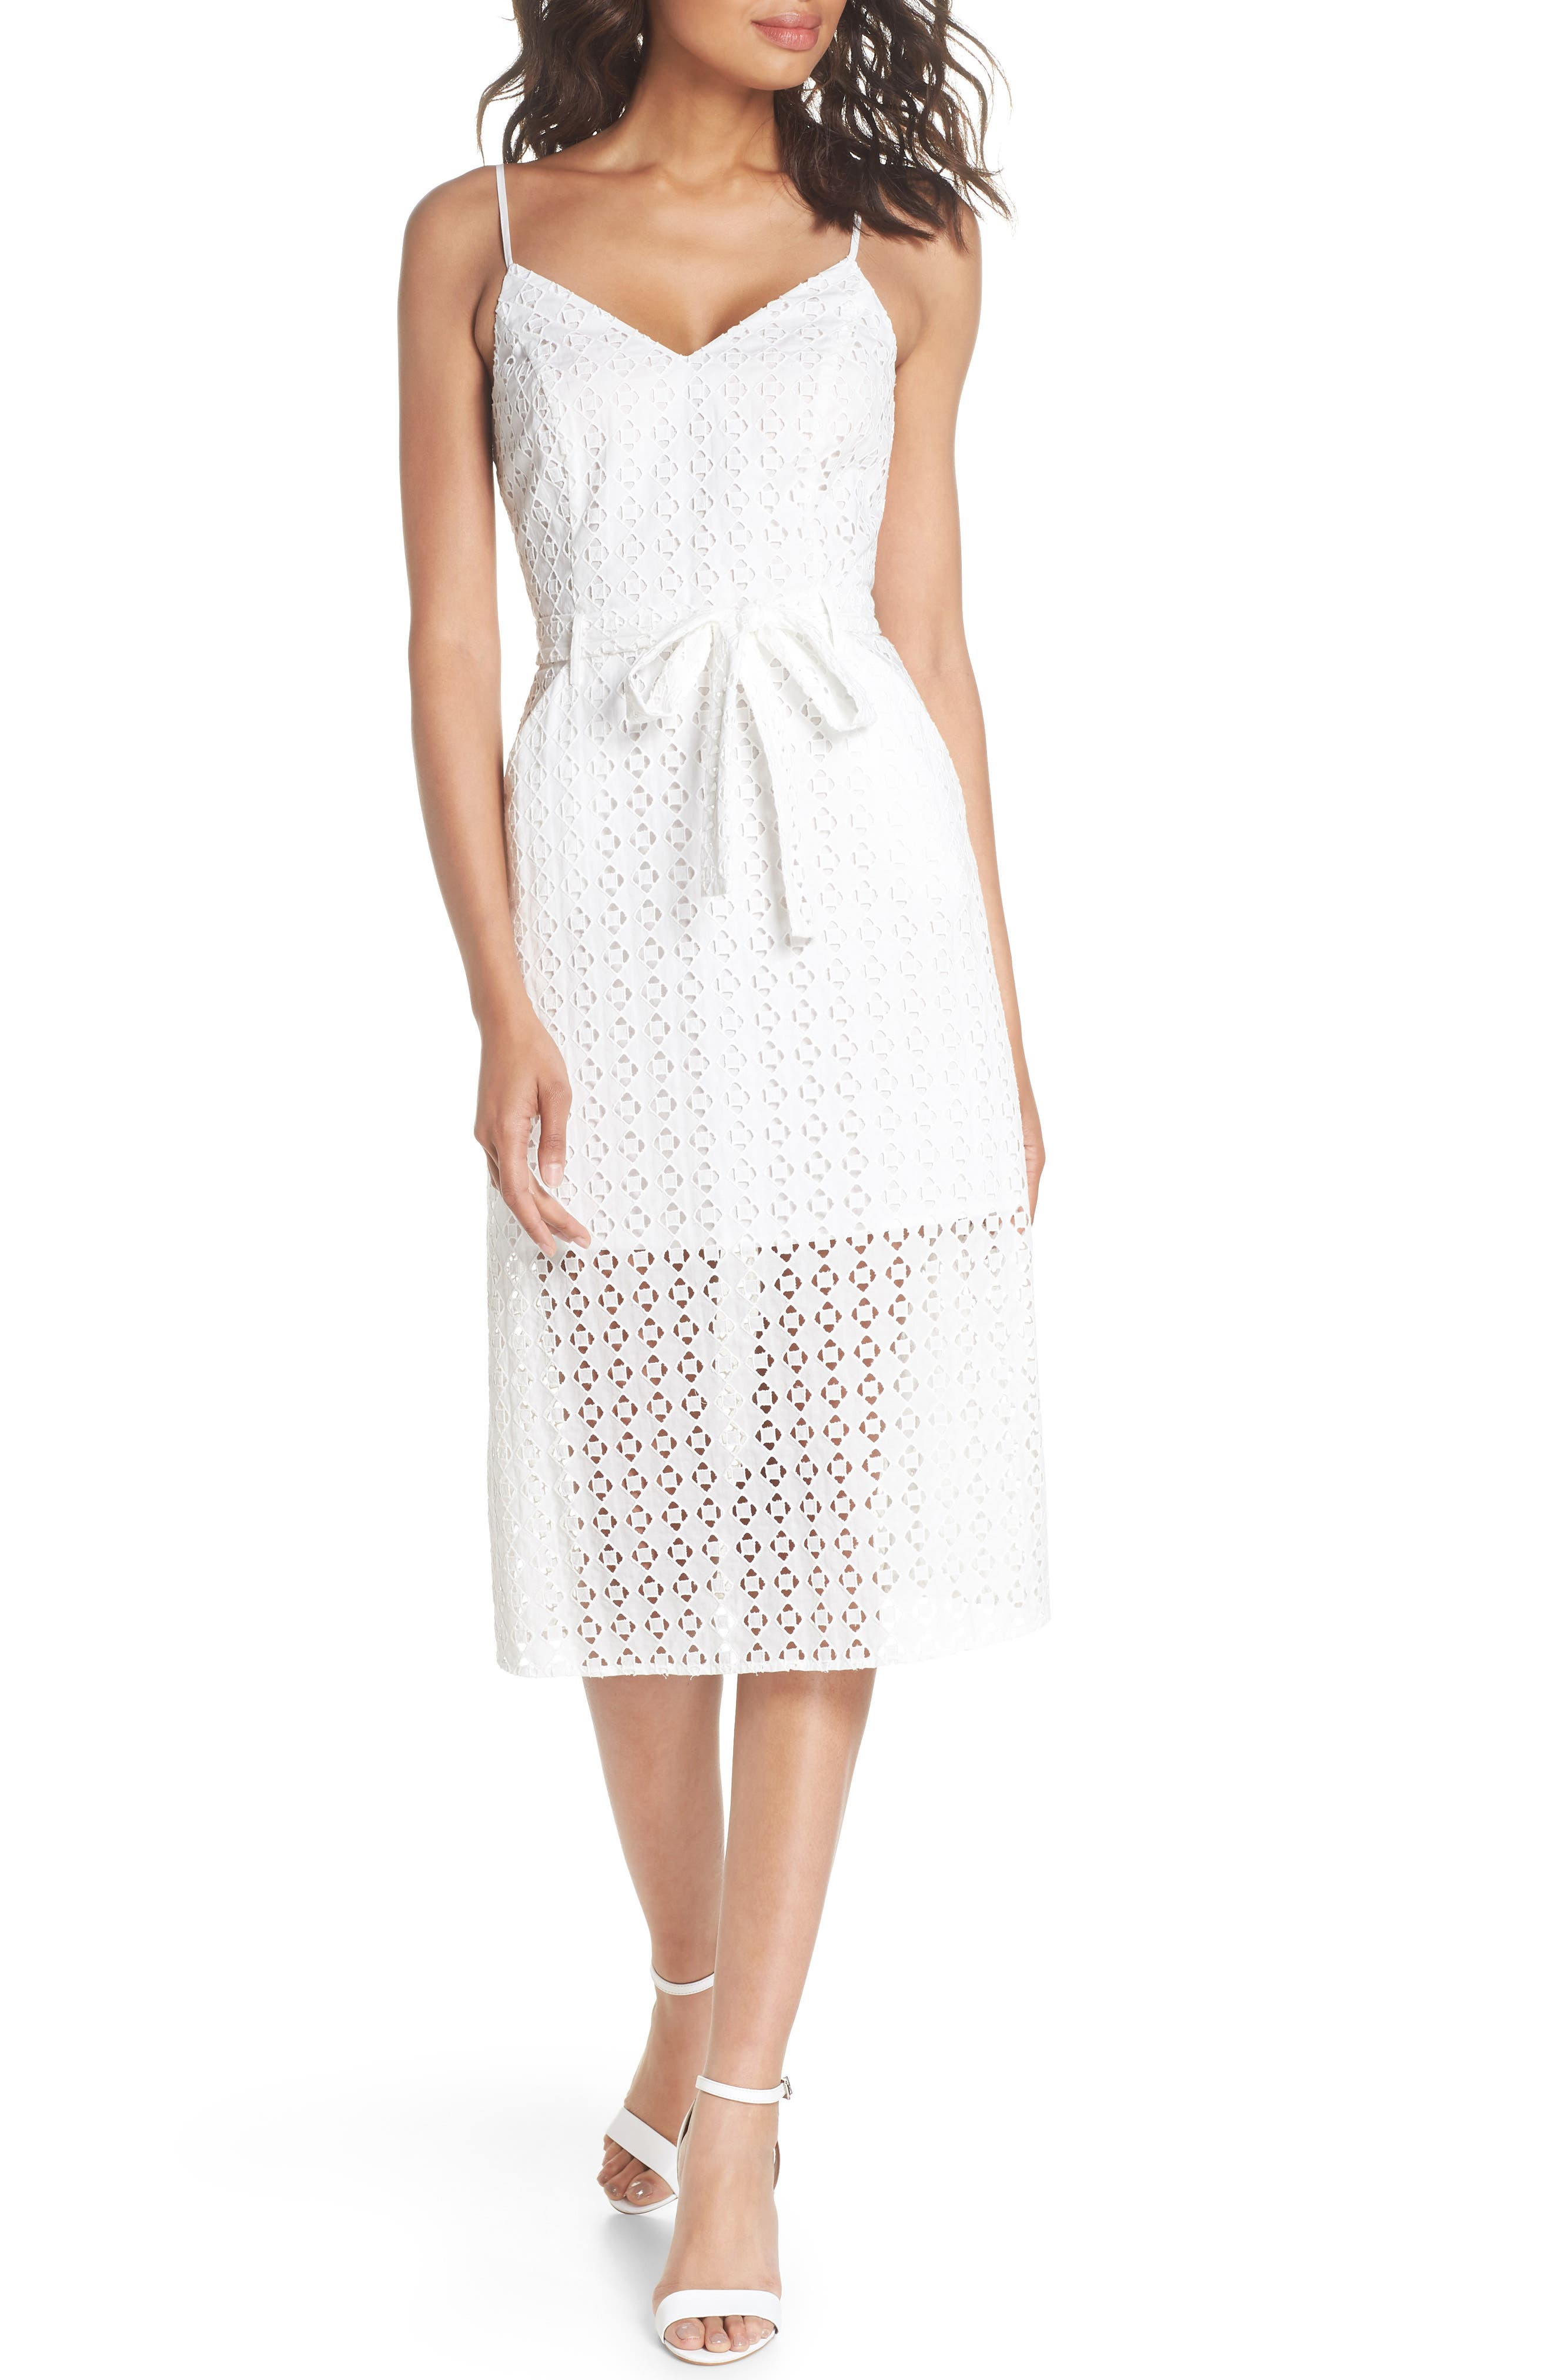 Ali & Jay Shutters Sunsets Cotton Eyelet Midi Dress